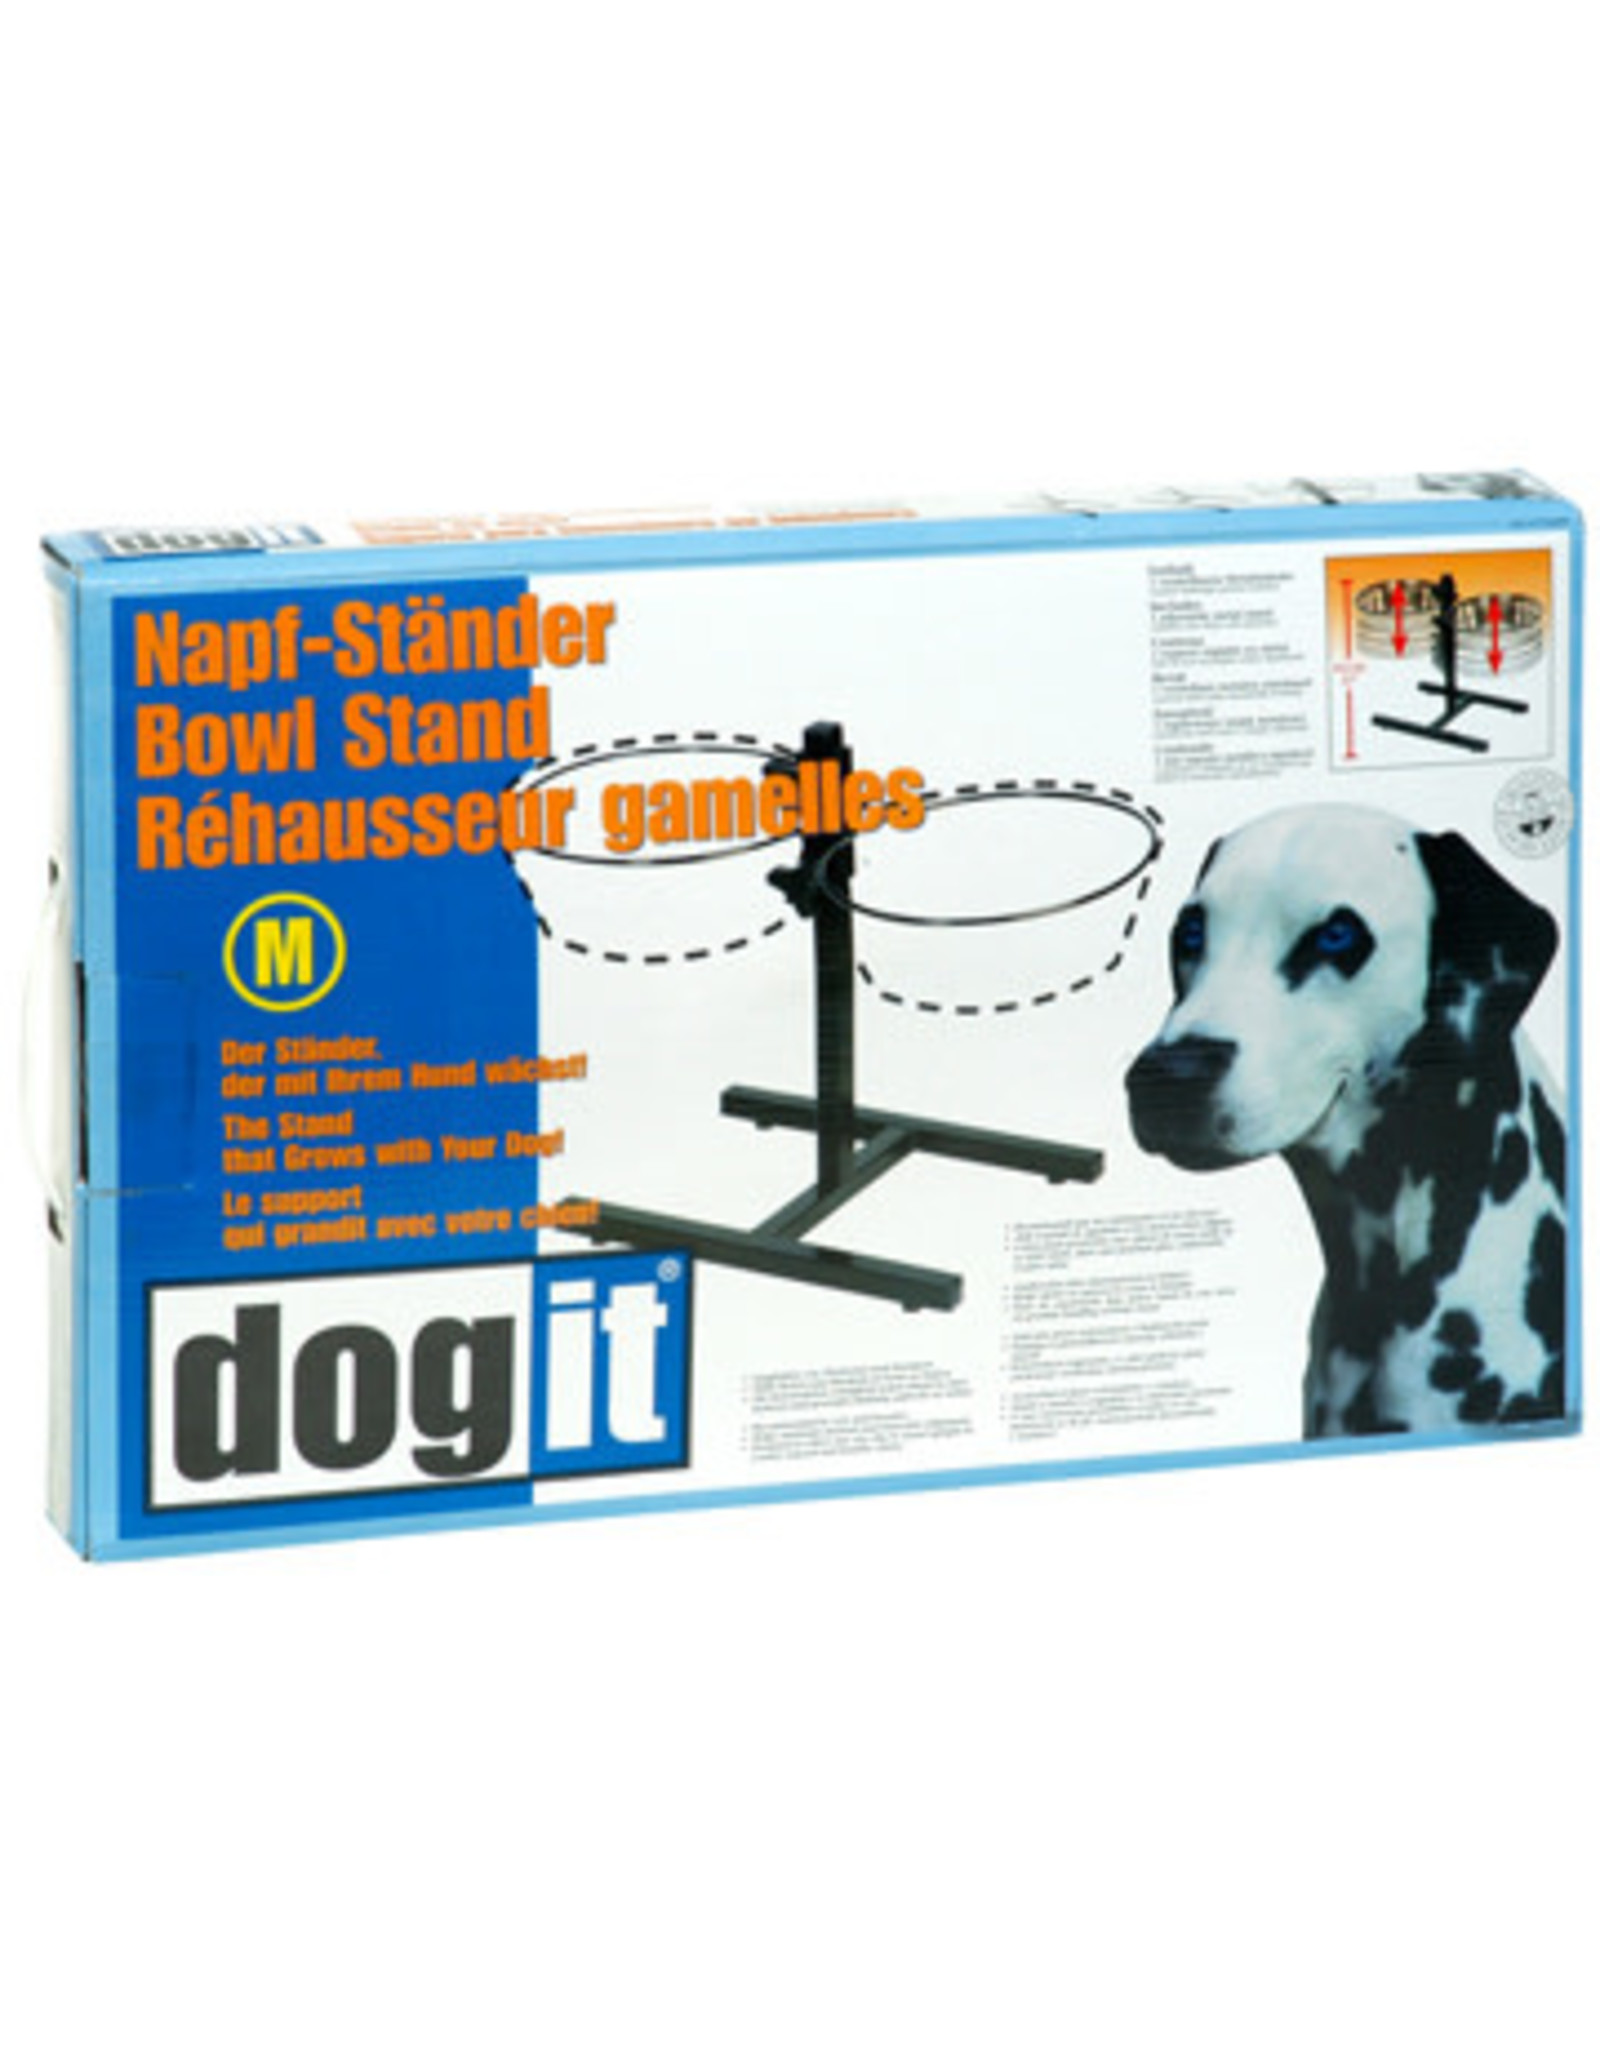 DogIt Adjustable Dog Bowl Stand M